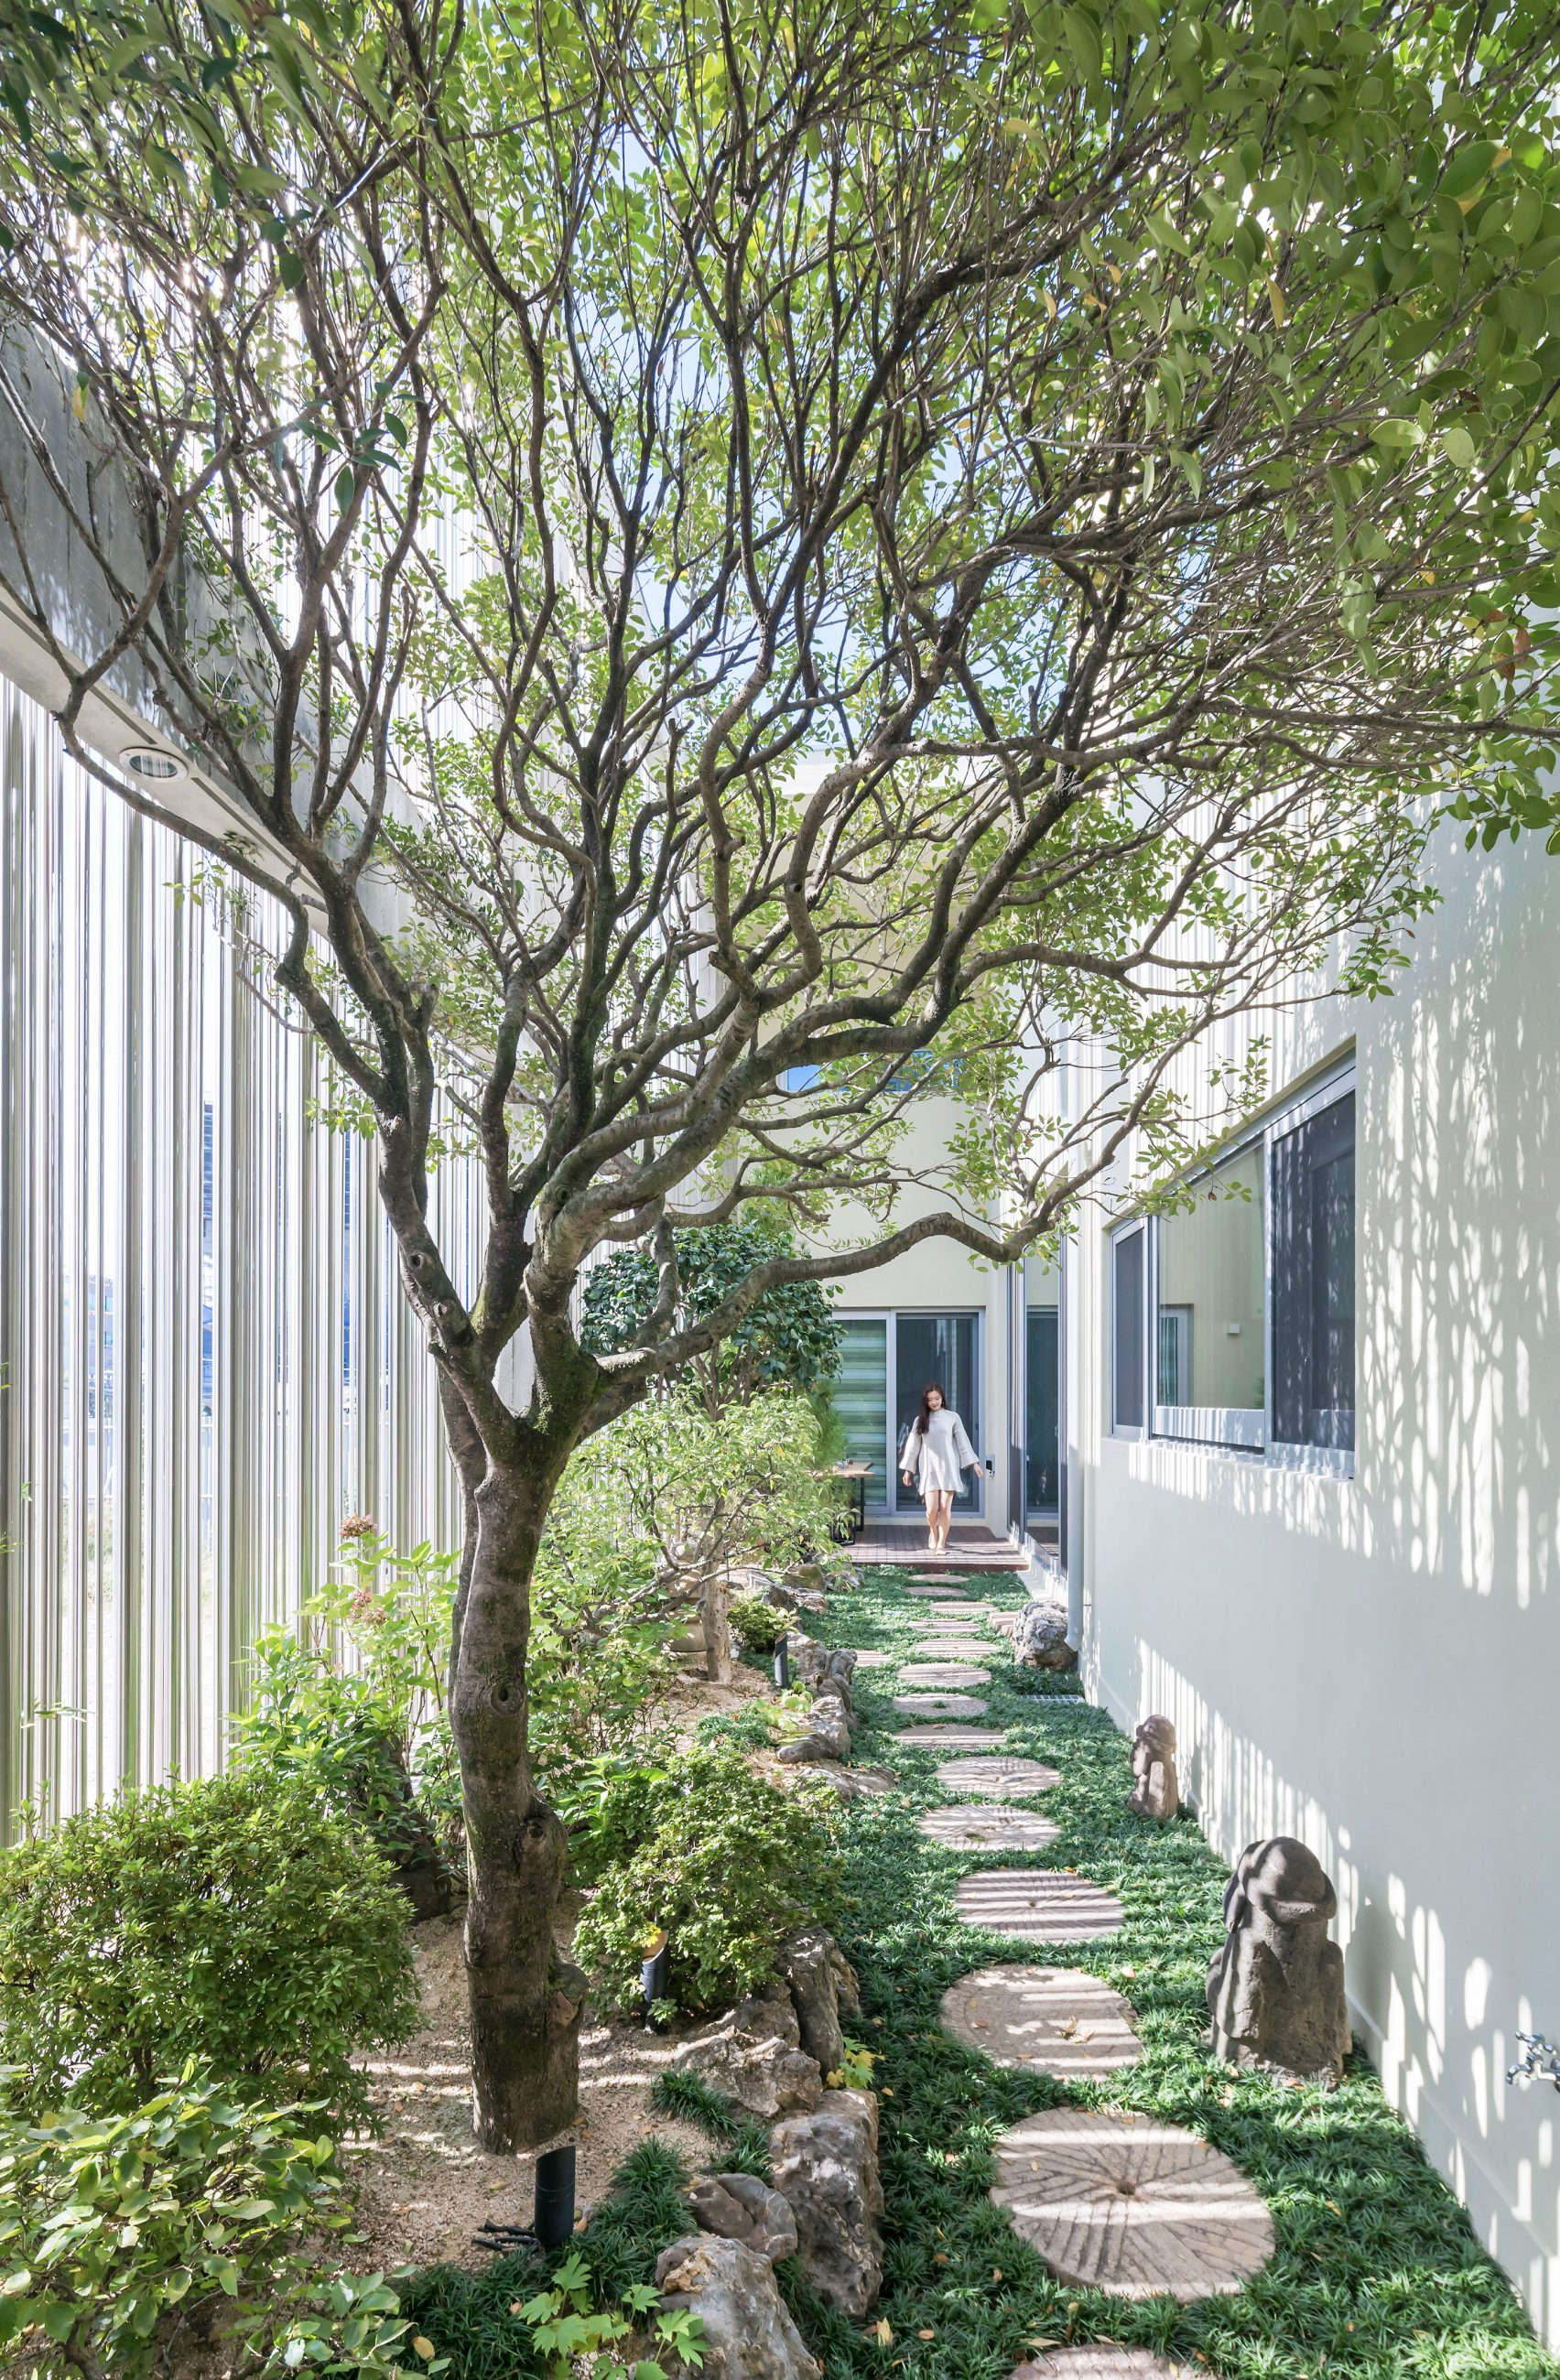 steel-grove-augmented-reality-architecture-residential-south-korea-courtyards-steel_dezeen_2364_col_6-1704x2600.jpg